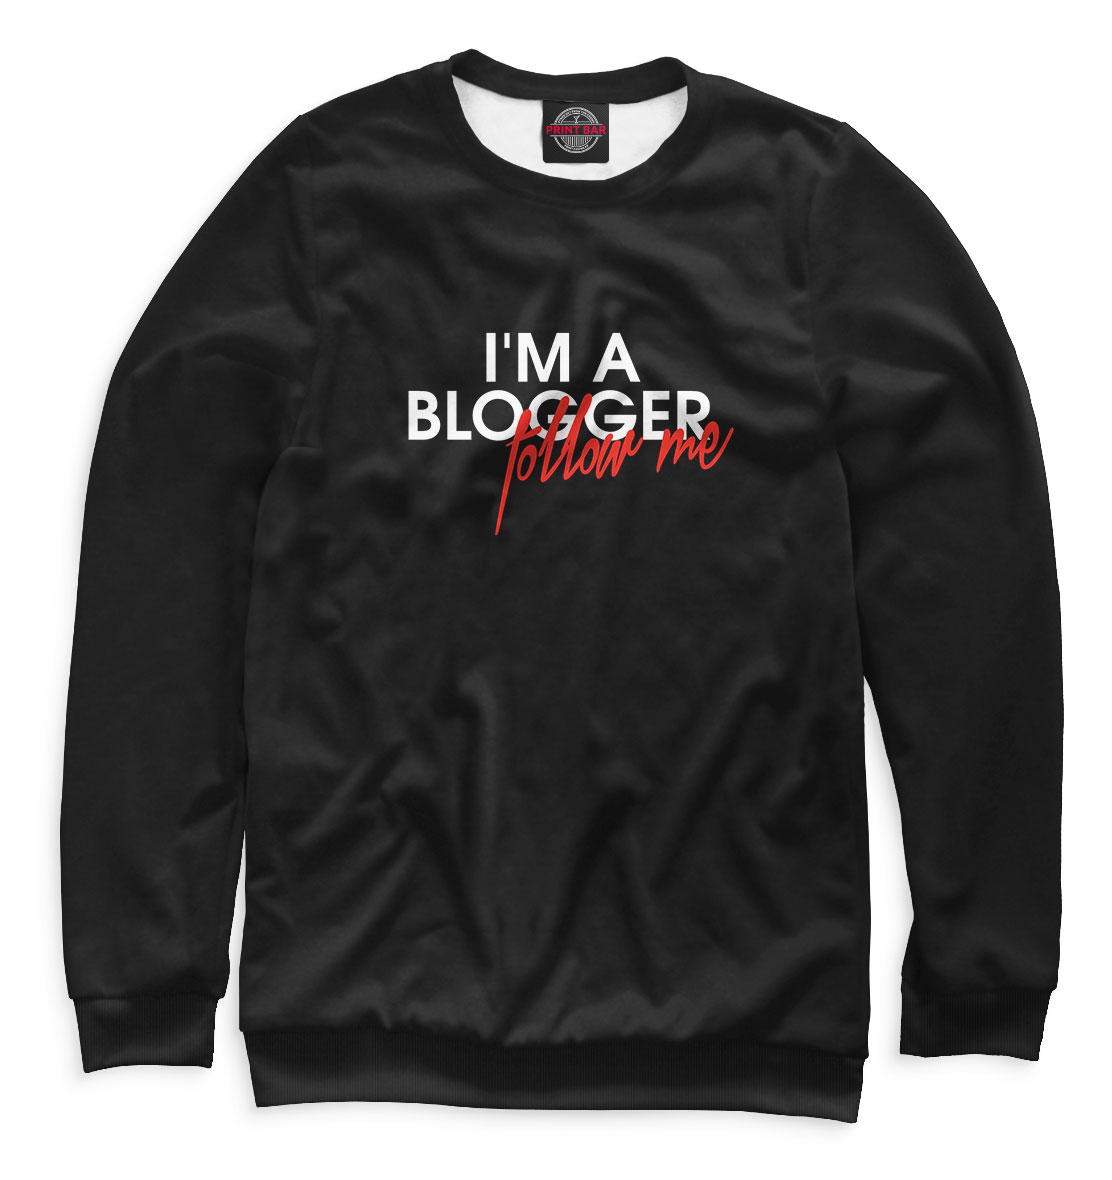 I'm a blogger follow me my favourite blogger is me